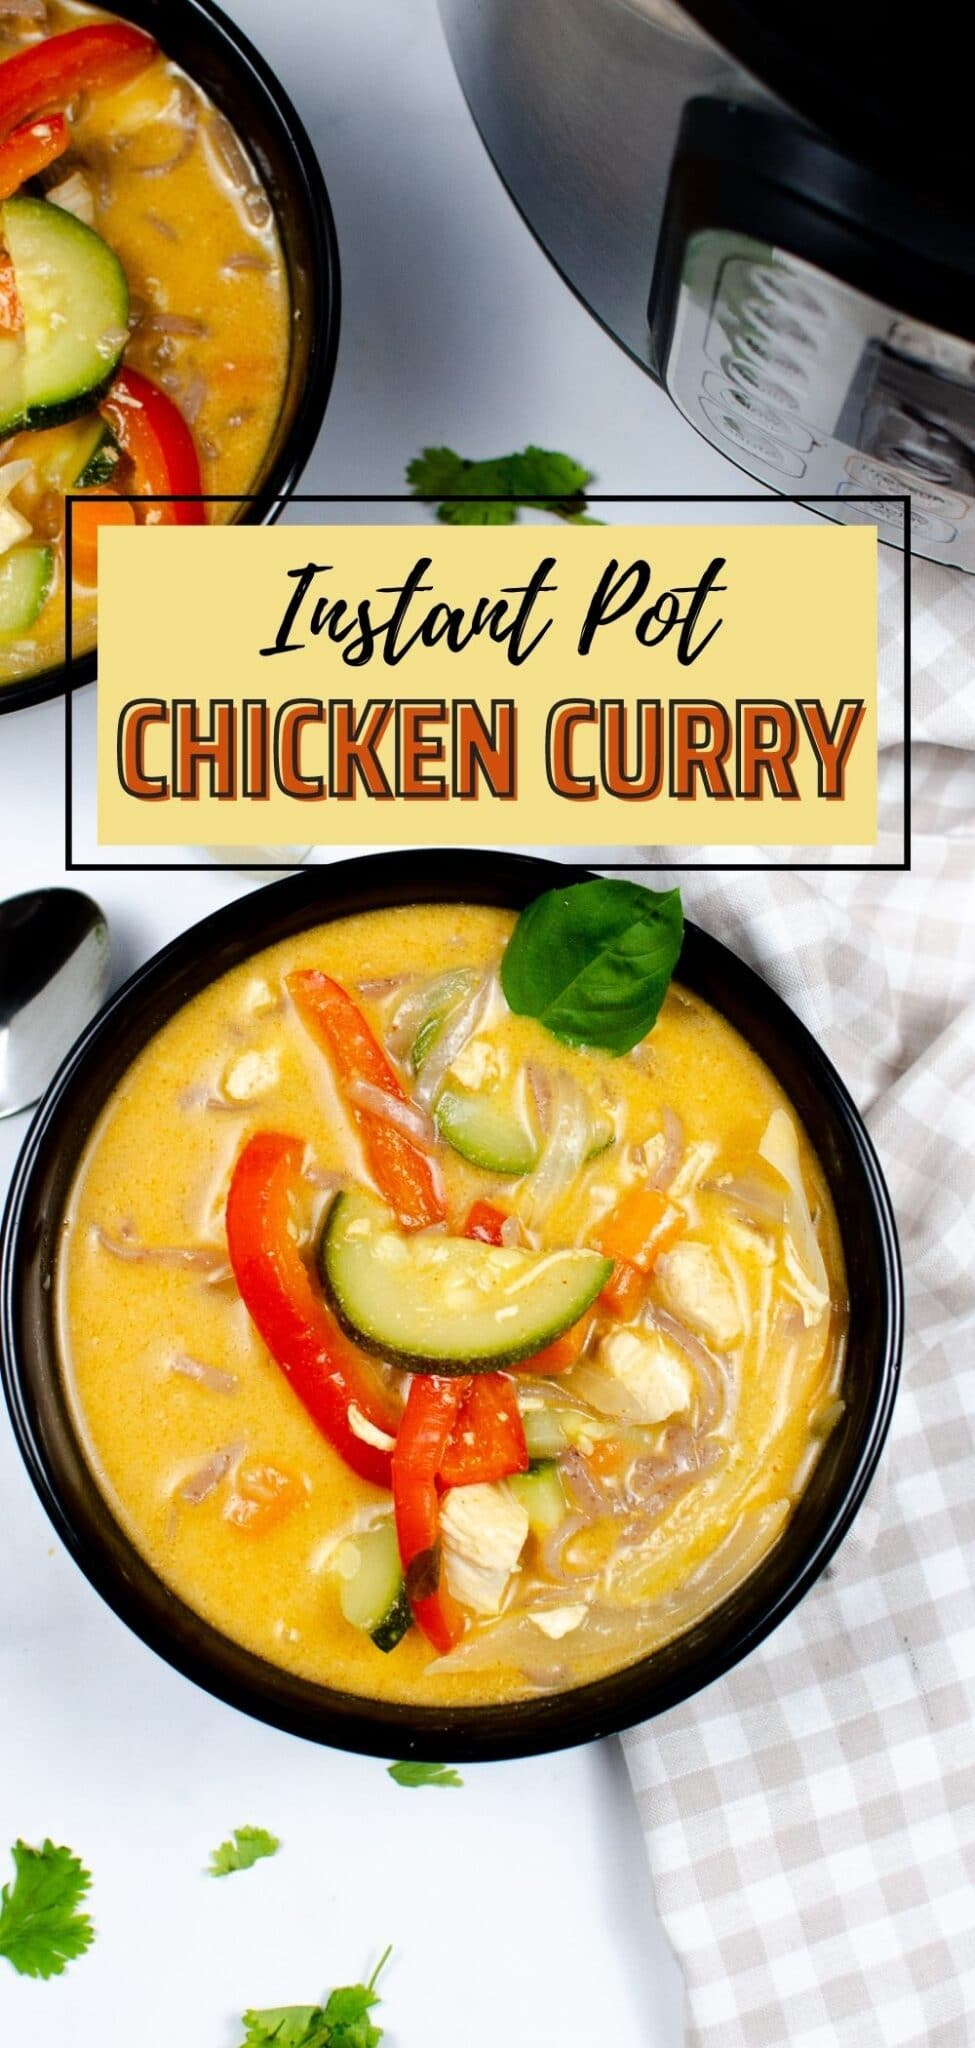 This instant pot Thai chicken curry is rich, flavorful, and fragrant. Just 30 minutes in an instant pot gives you the perfect spicy weeknight dinner! #thaichickencurry #chickencurry #thaifood #chicken #instantpot via @wondermomwannab